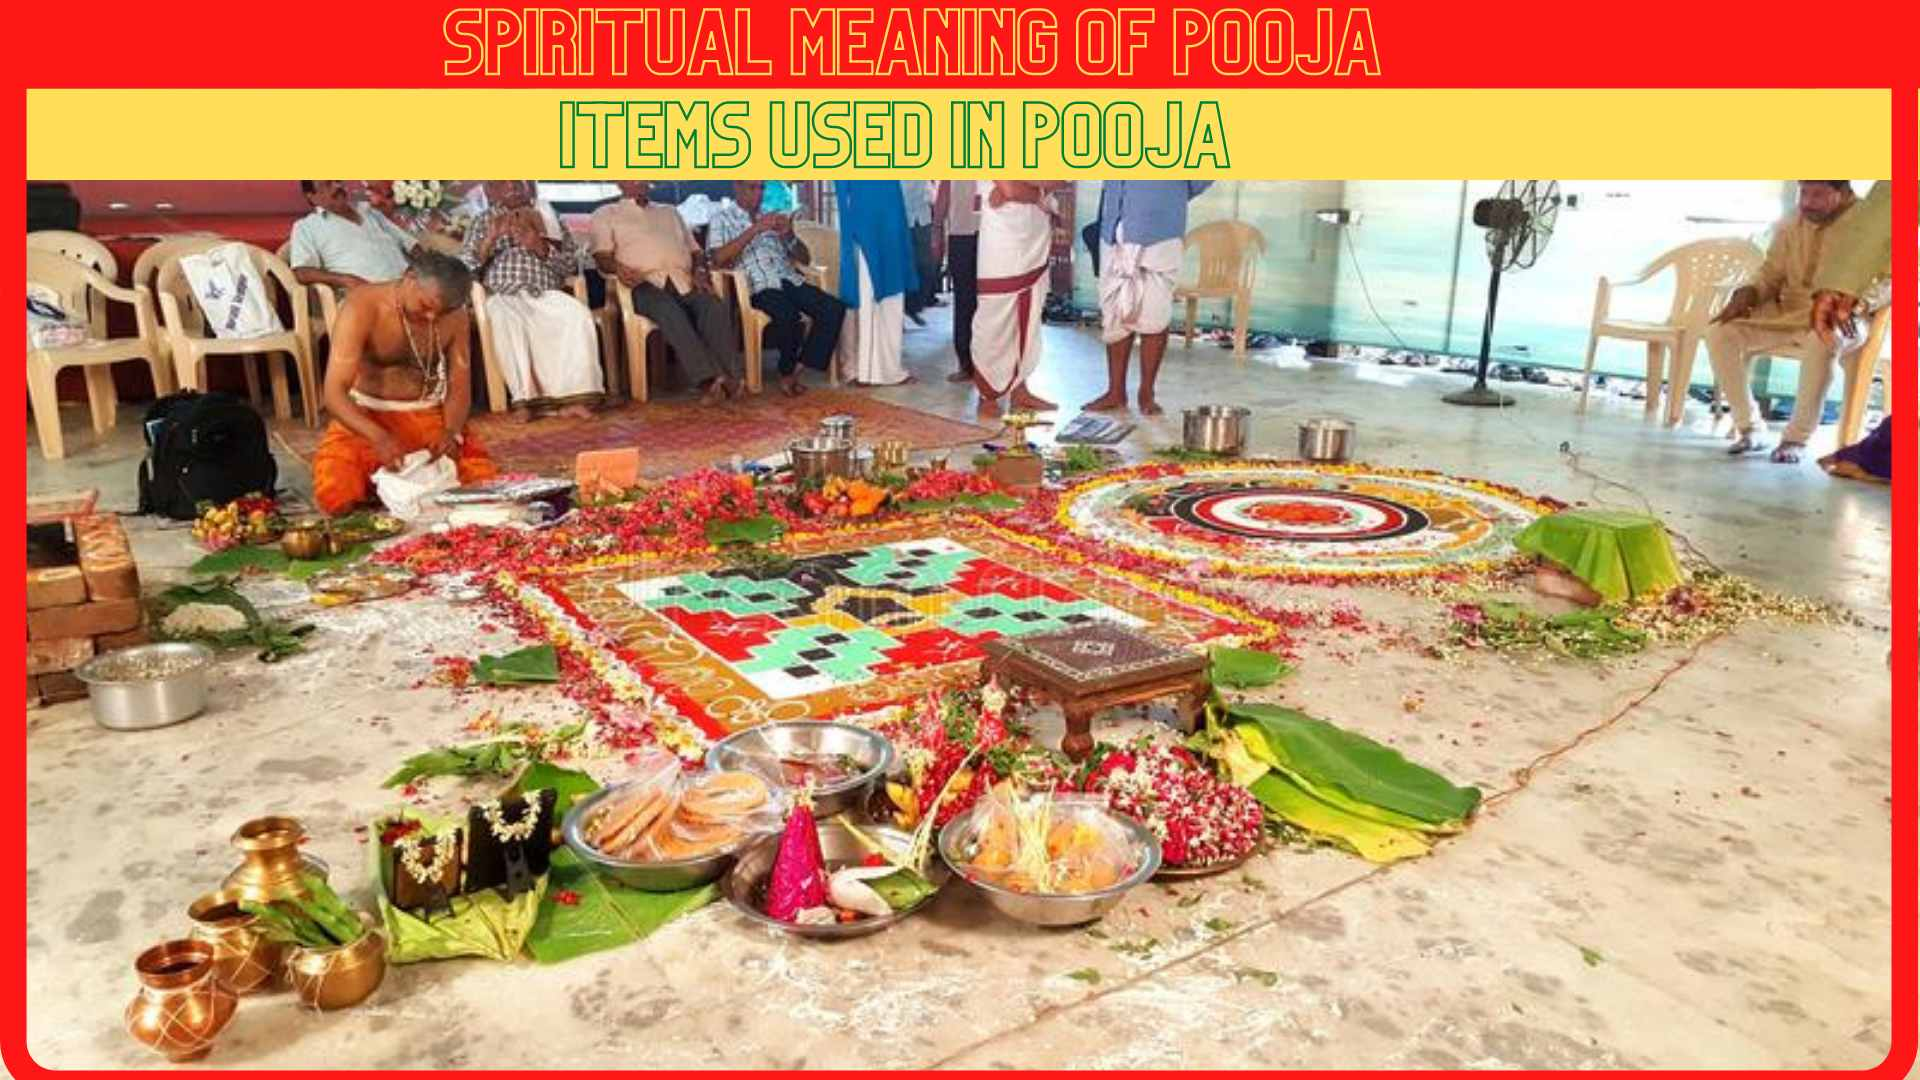 Spiritual Meaning of Pooja items used in Pooja